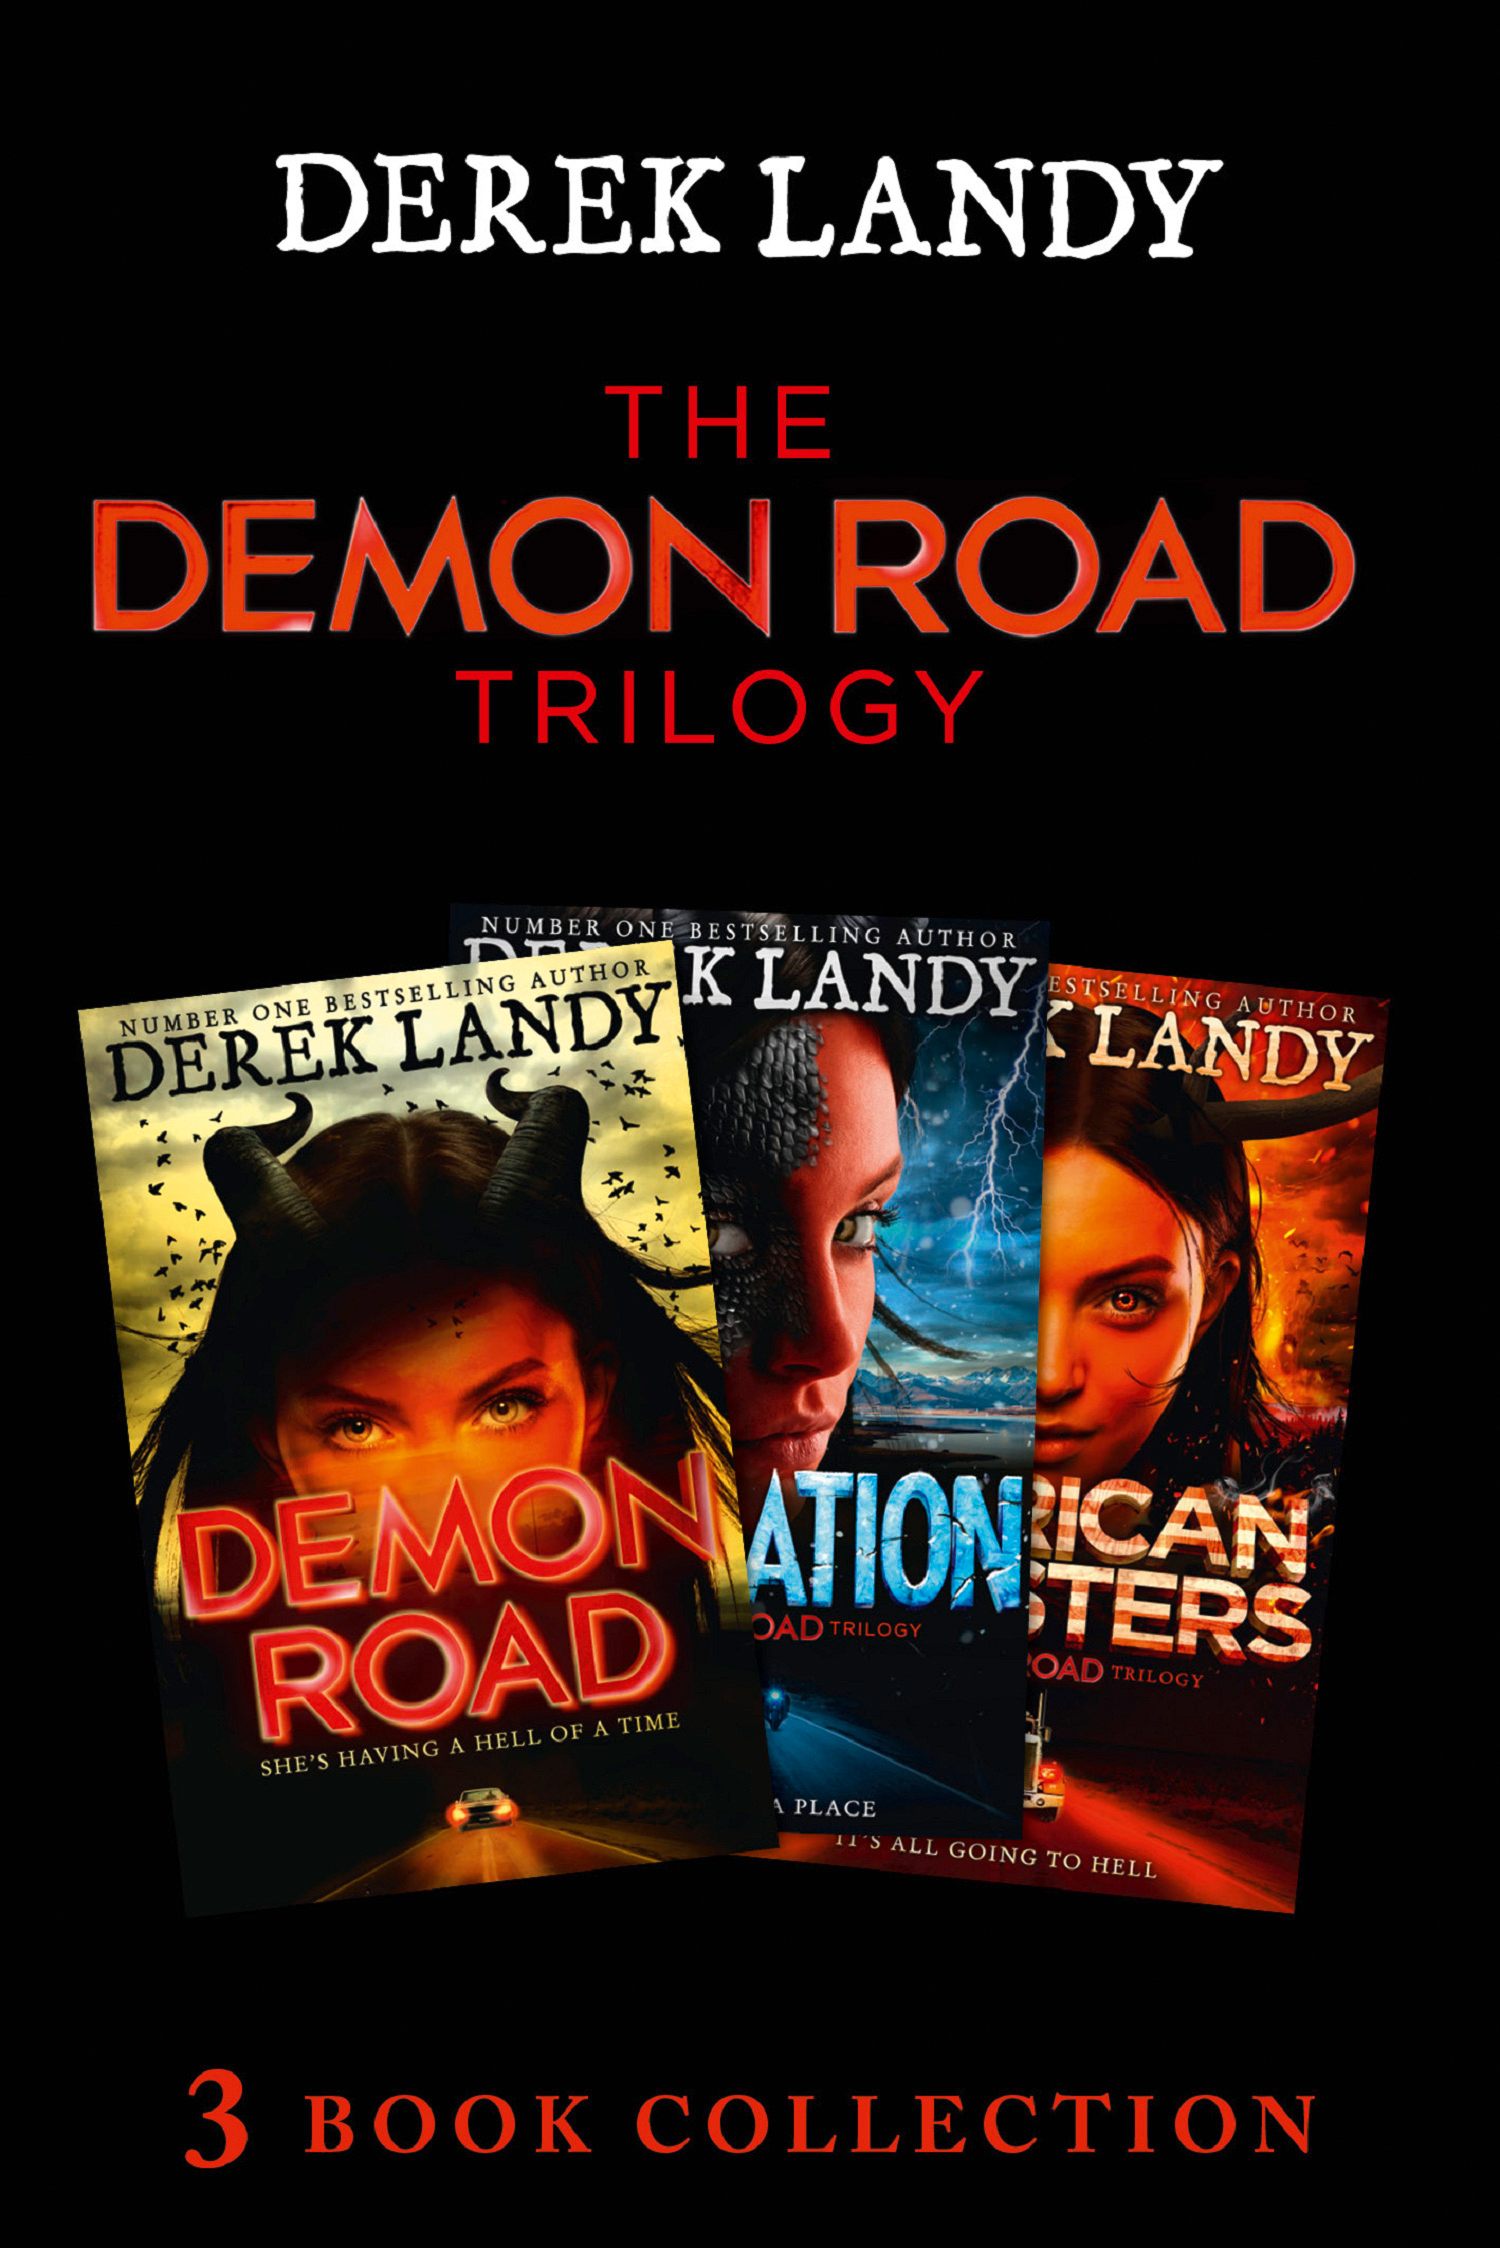 The Demon Road Trilogy: The Complete Collection